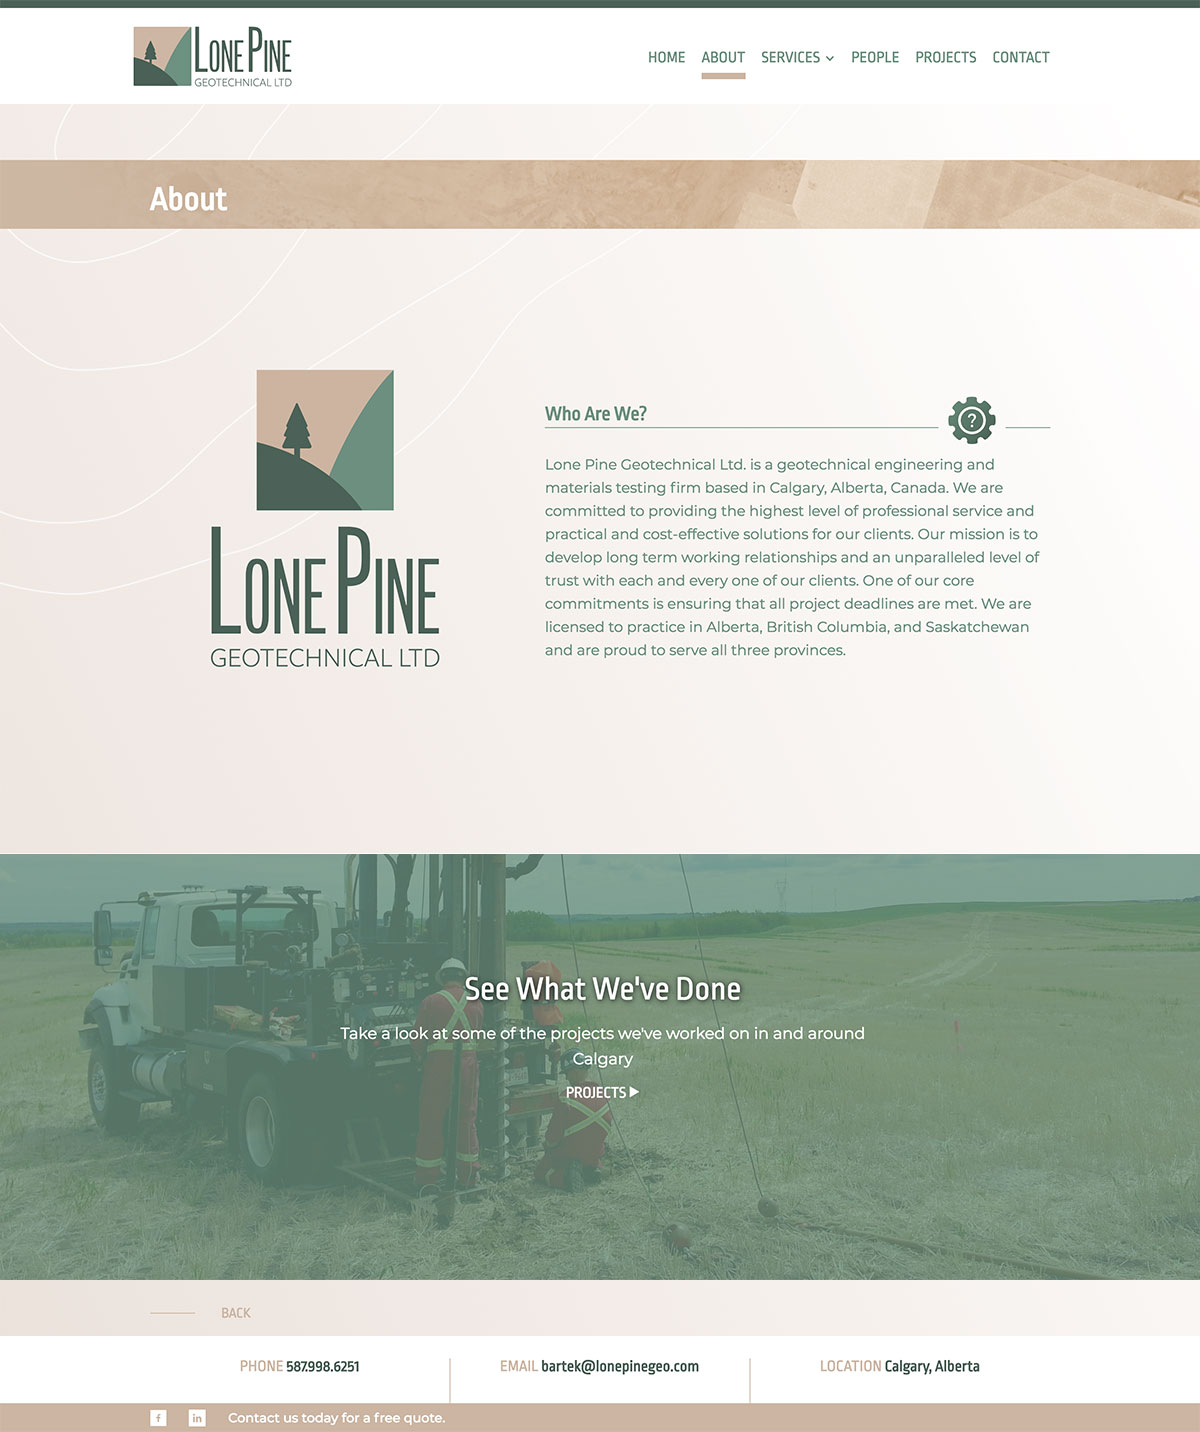 Lone Pine Geotechnical Ltd  - Graphic and web design